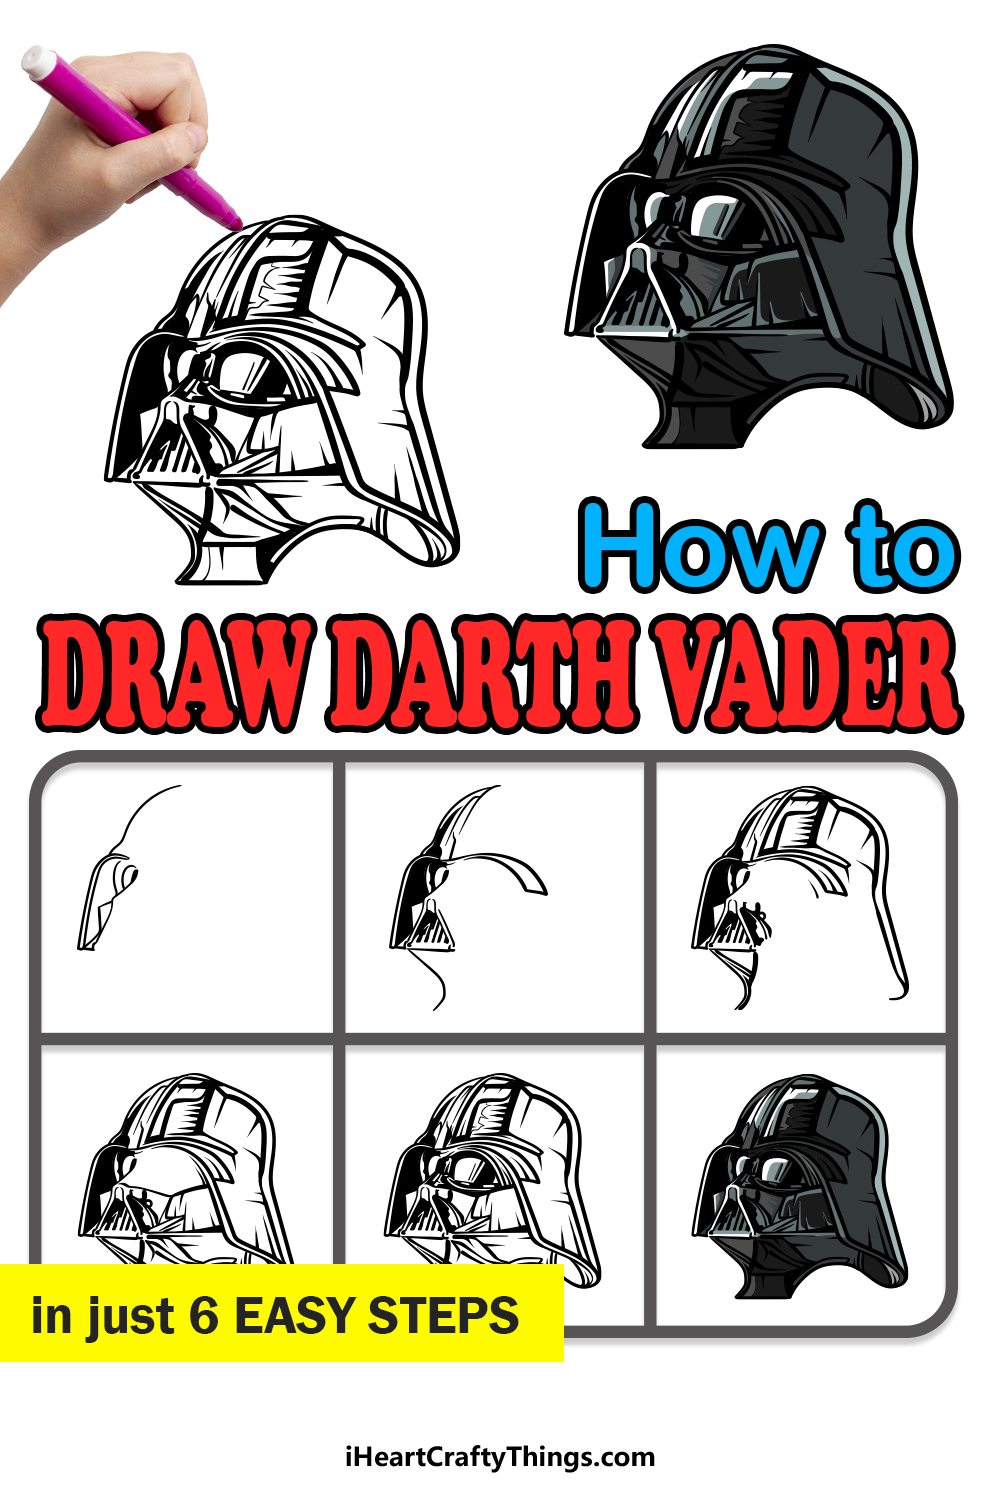 how to draw Darth Vader in 6 easy steps